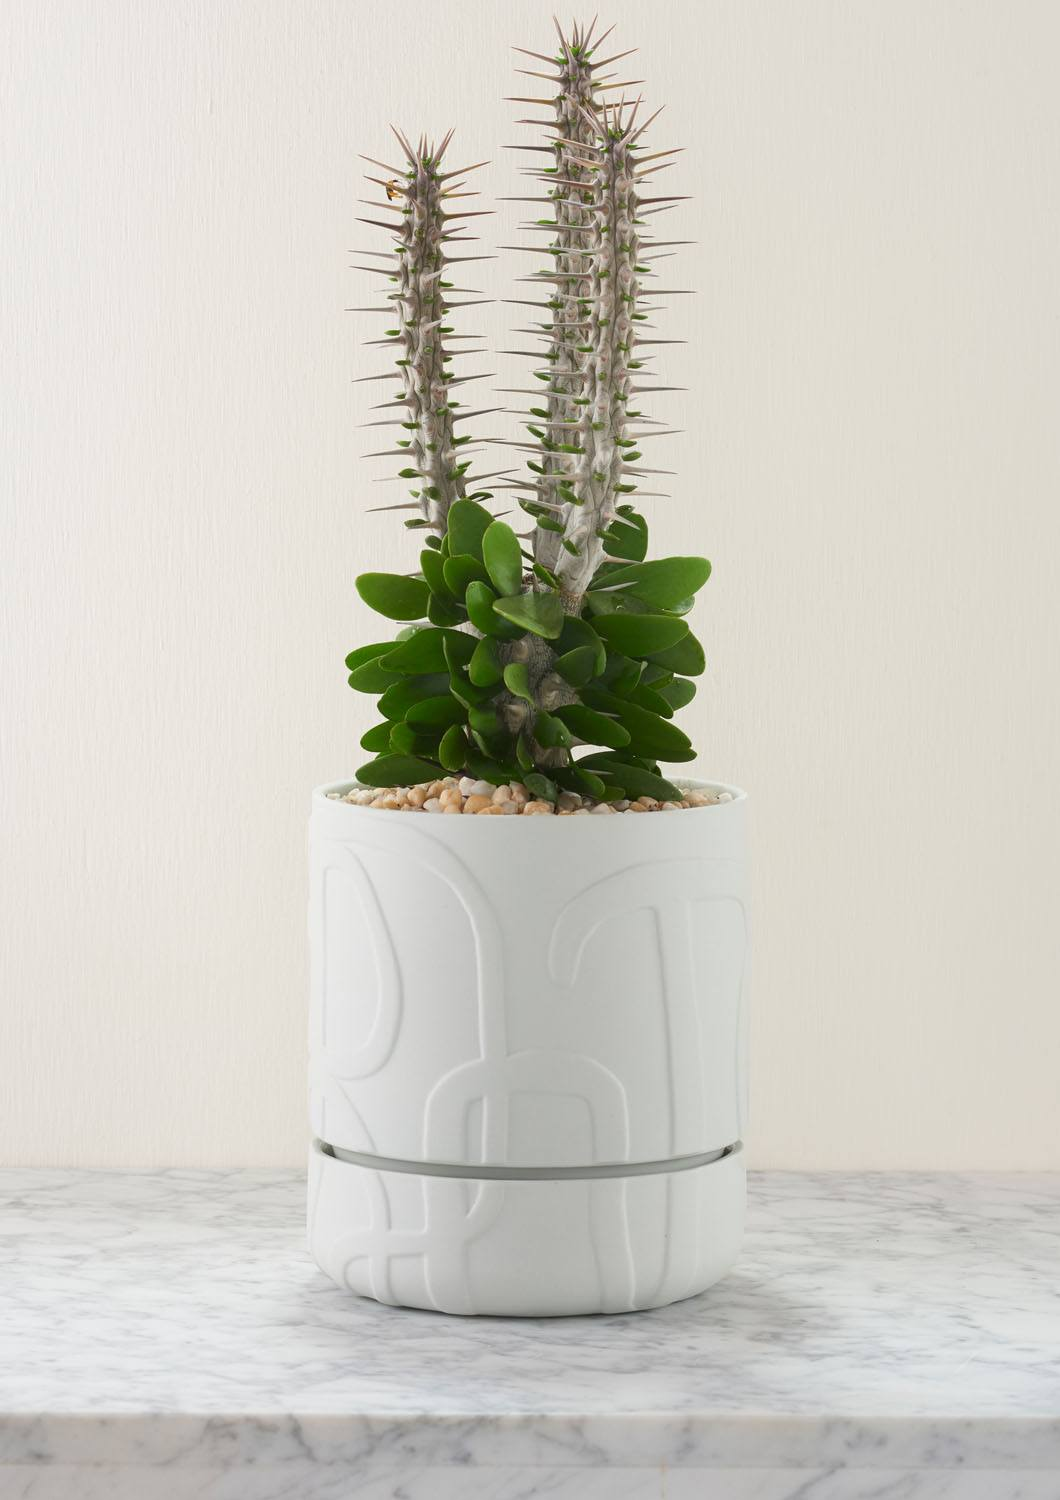 Angus & Celeste Abstract Relief Plant Pot - Brush Line Thick Soft Grey Styled